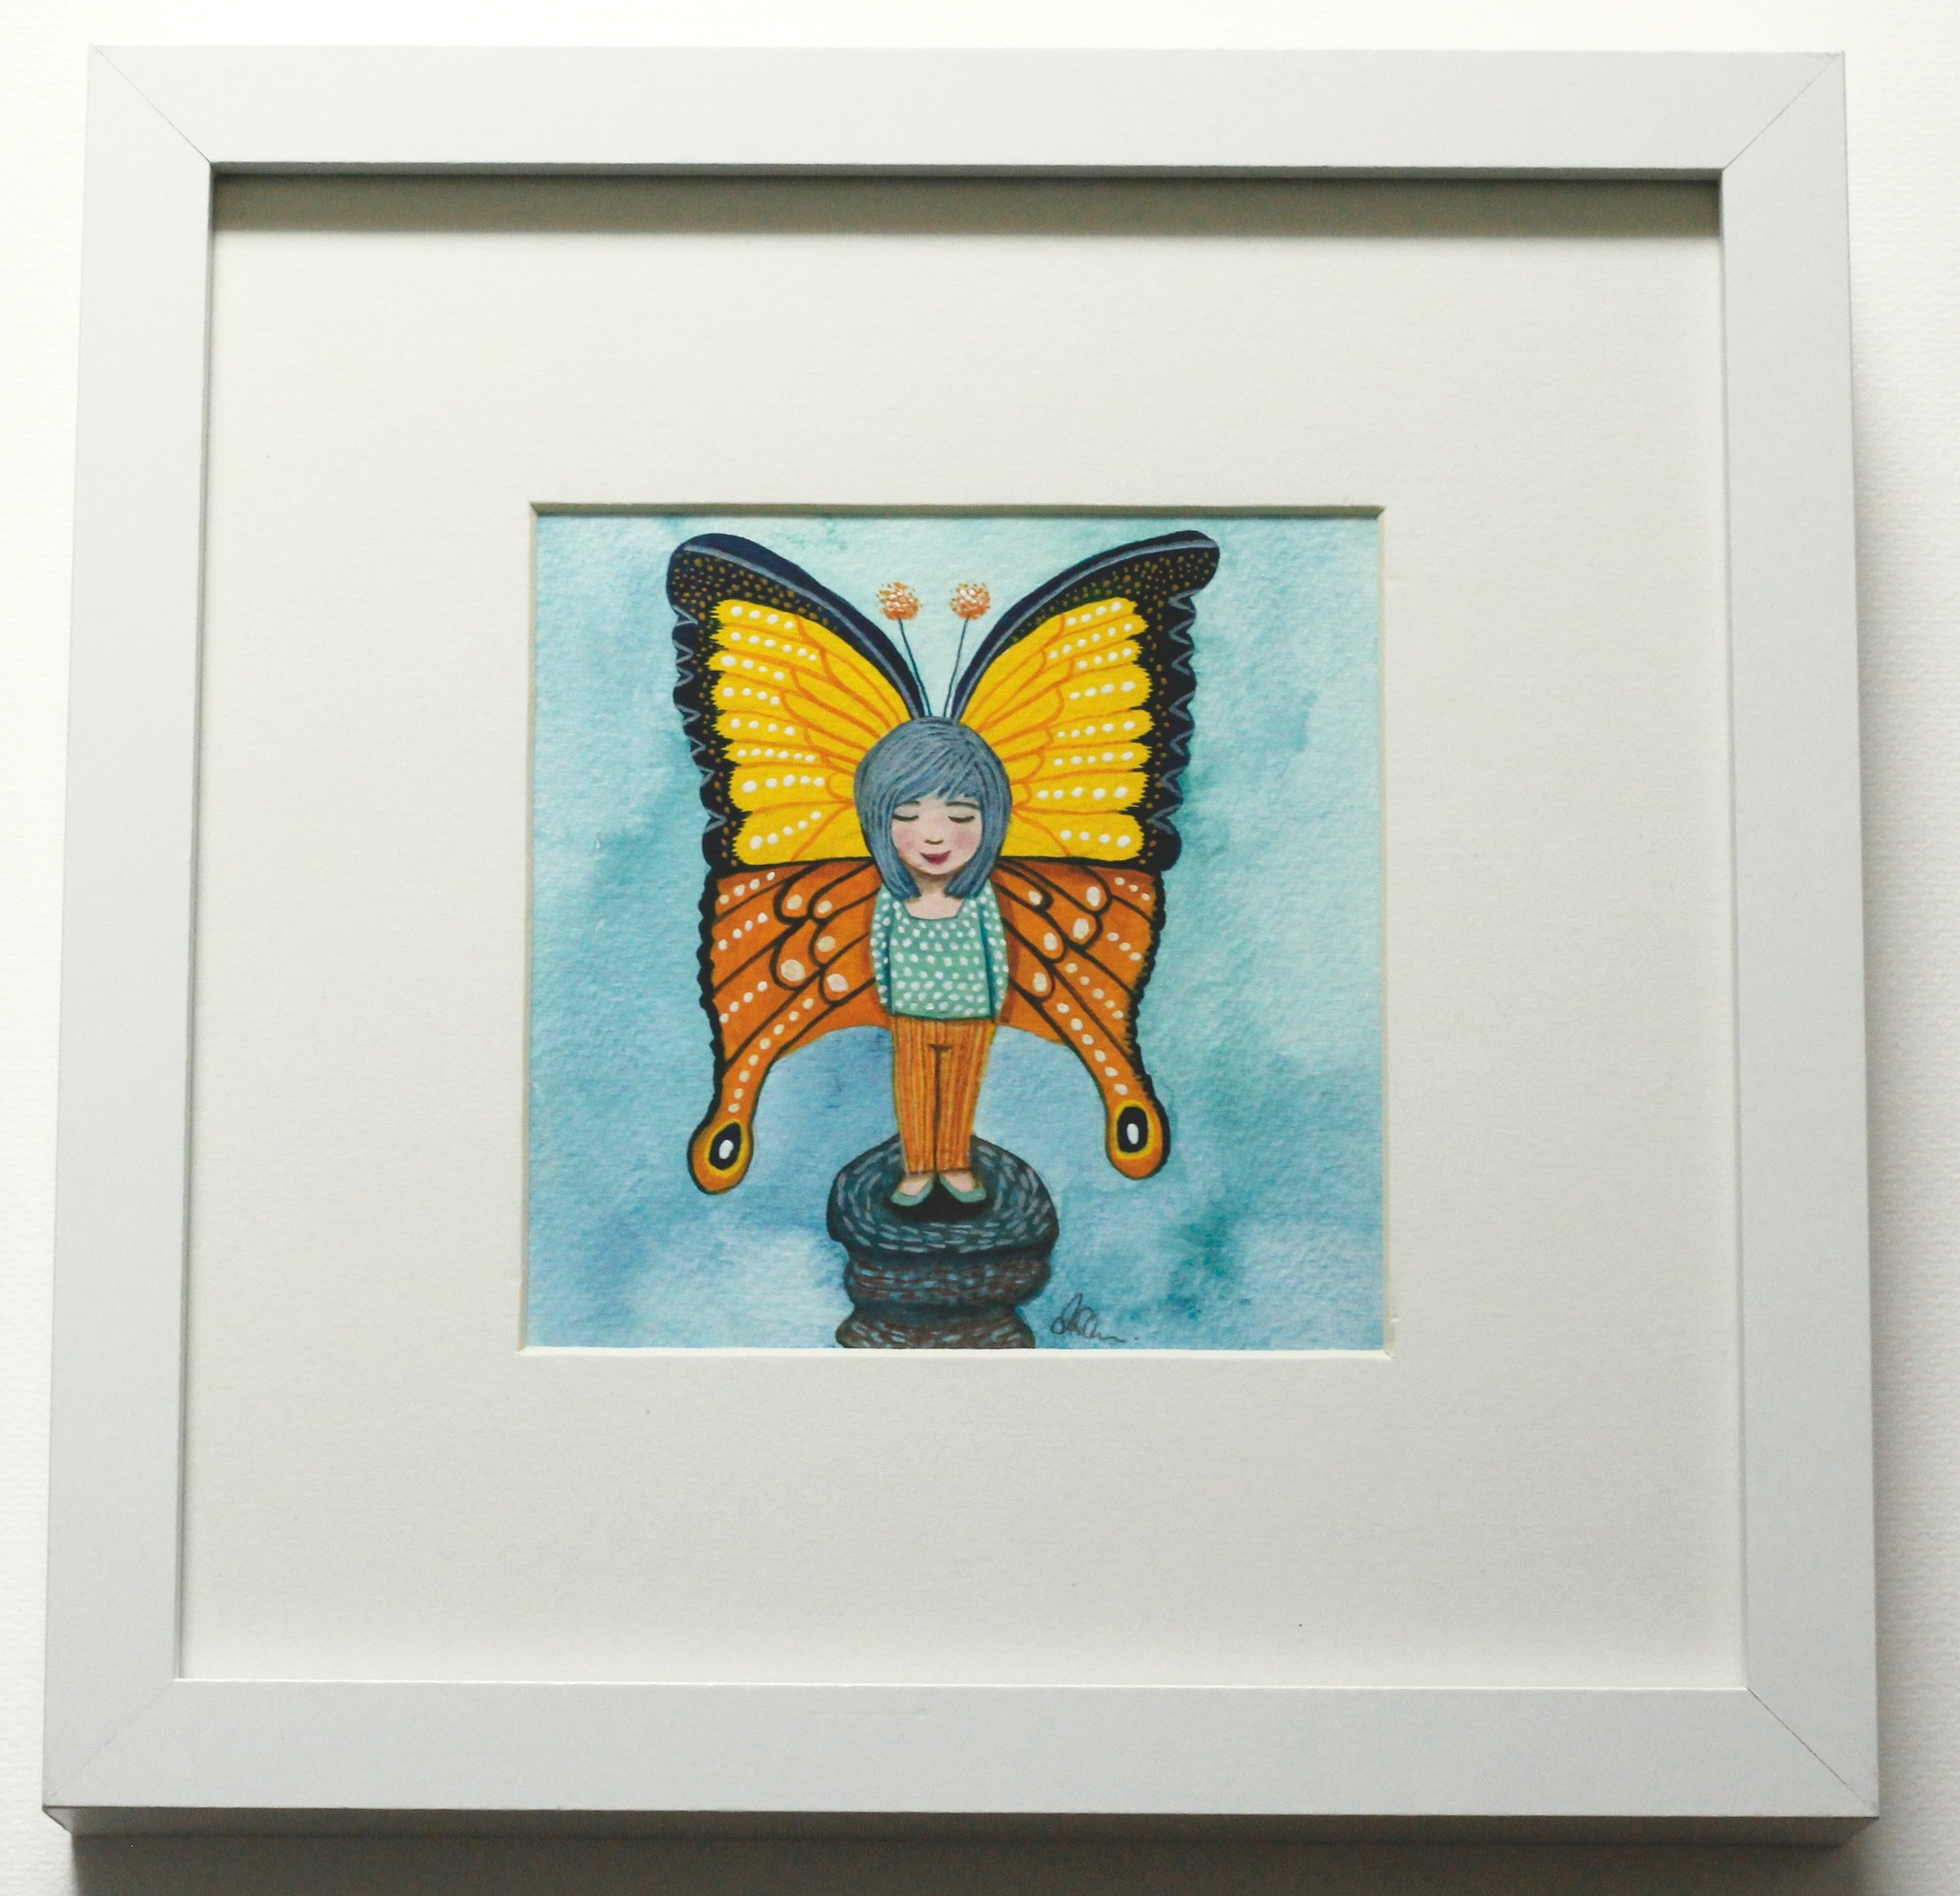 Butterfly Girl - 12x12cm gouache and pencil on paper €45SOLD